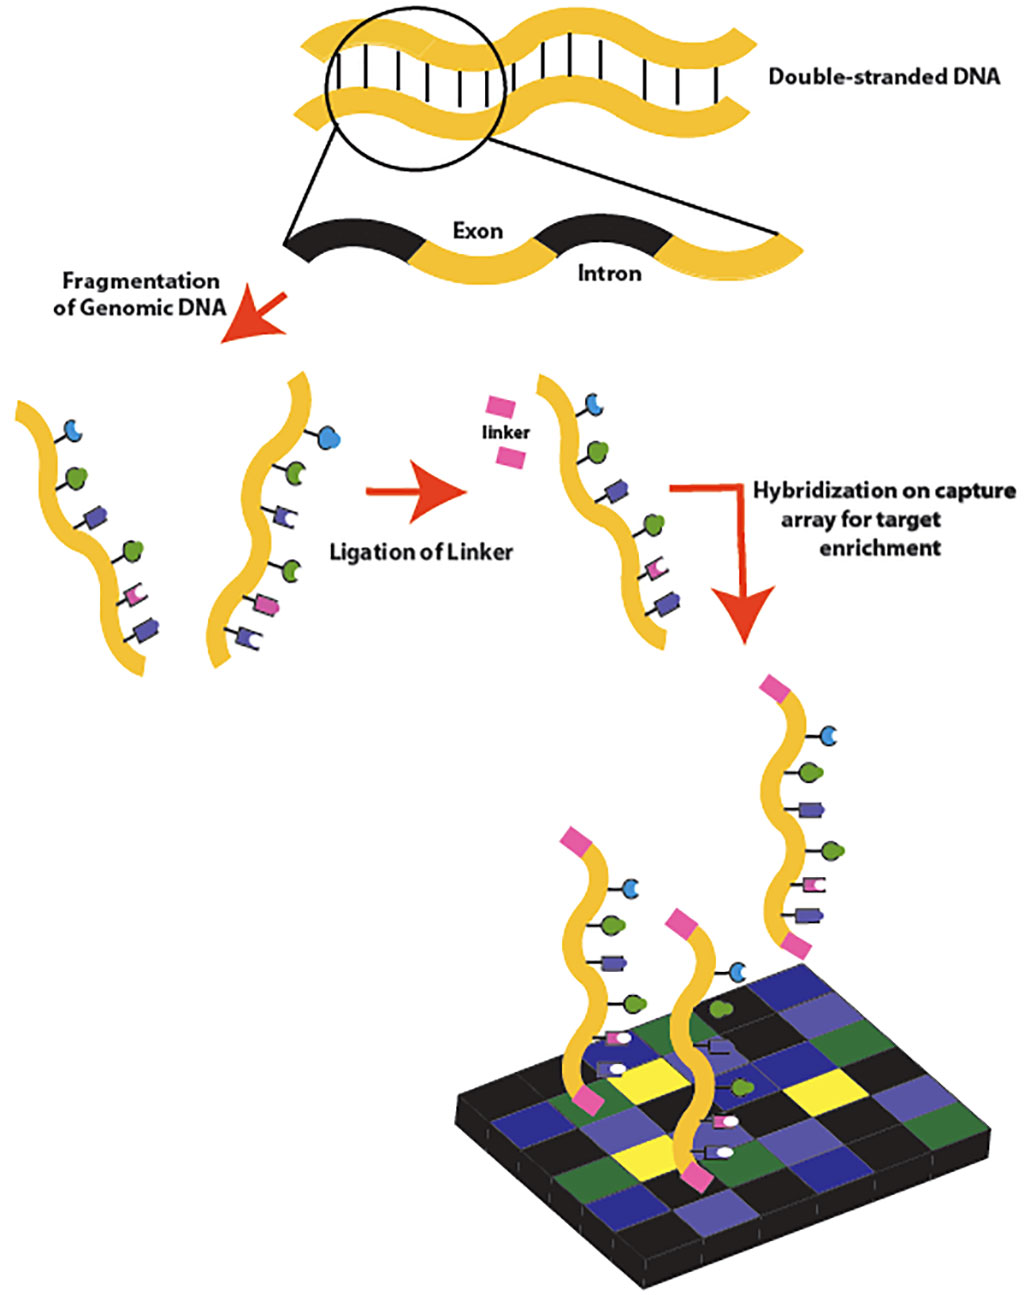 Image: Exome sequencing workflow: Double-stranded genomic DNA is fragmented by sonication. Linkers are then attached to the DNA fragments, which are then hybridized to a capture microarray designed to target only the exons (Photo courtesy of SarahKusala).